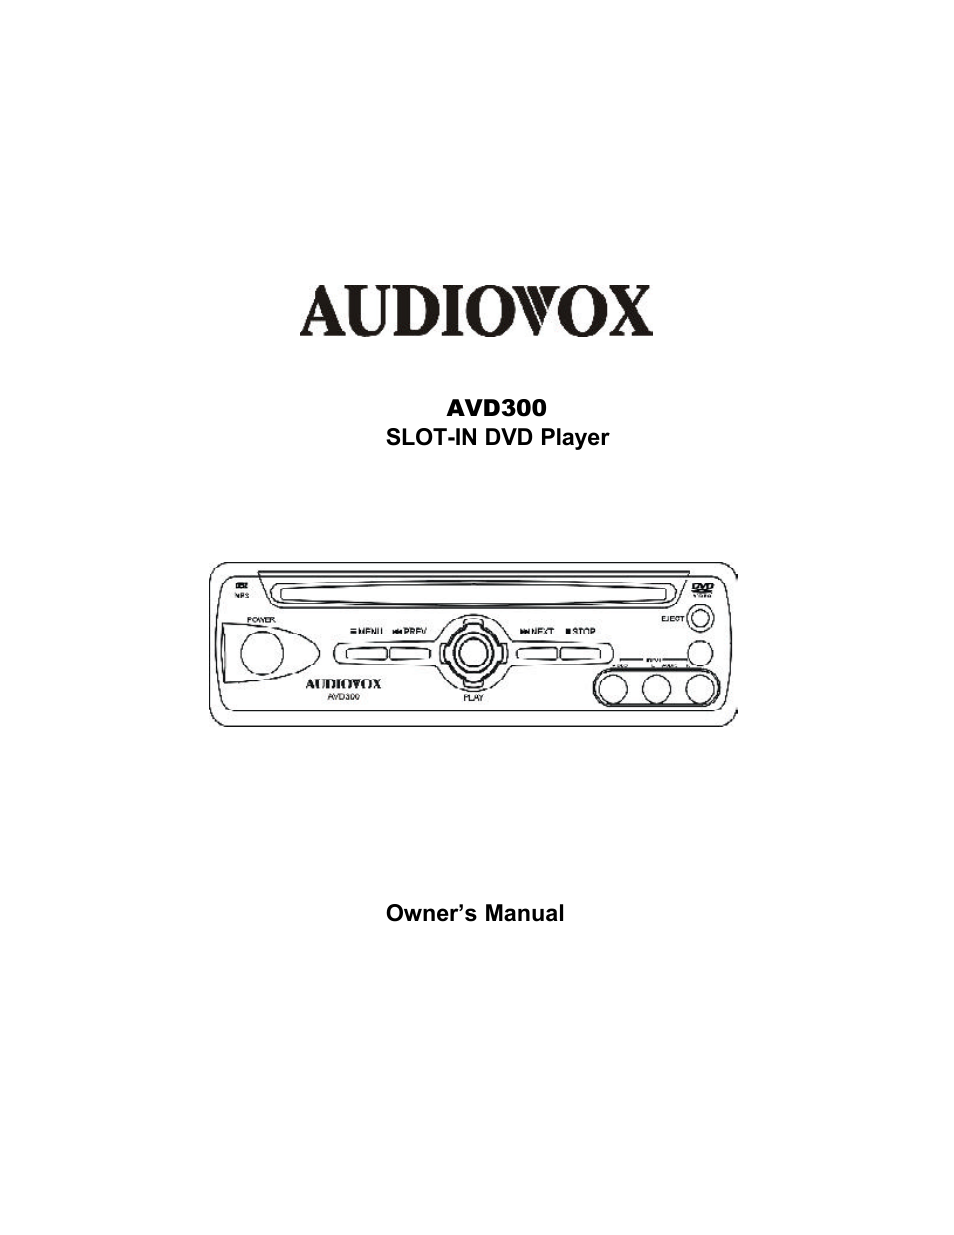 audiovox avd300 user manual 30 pages rh manualsdir com User Guide Template Quick Reference Guide